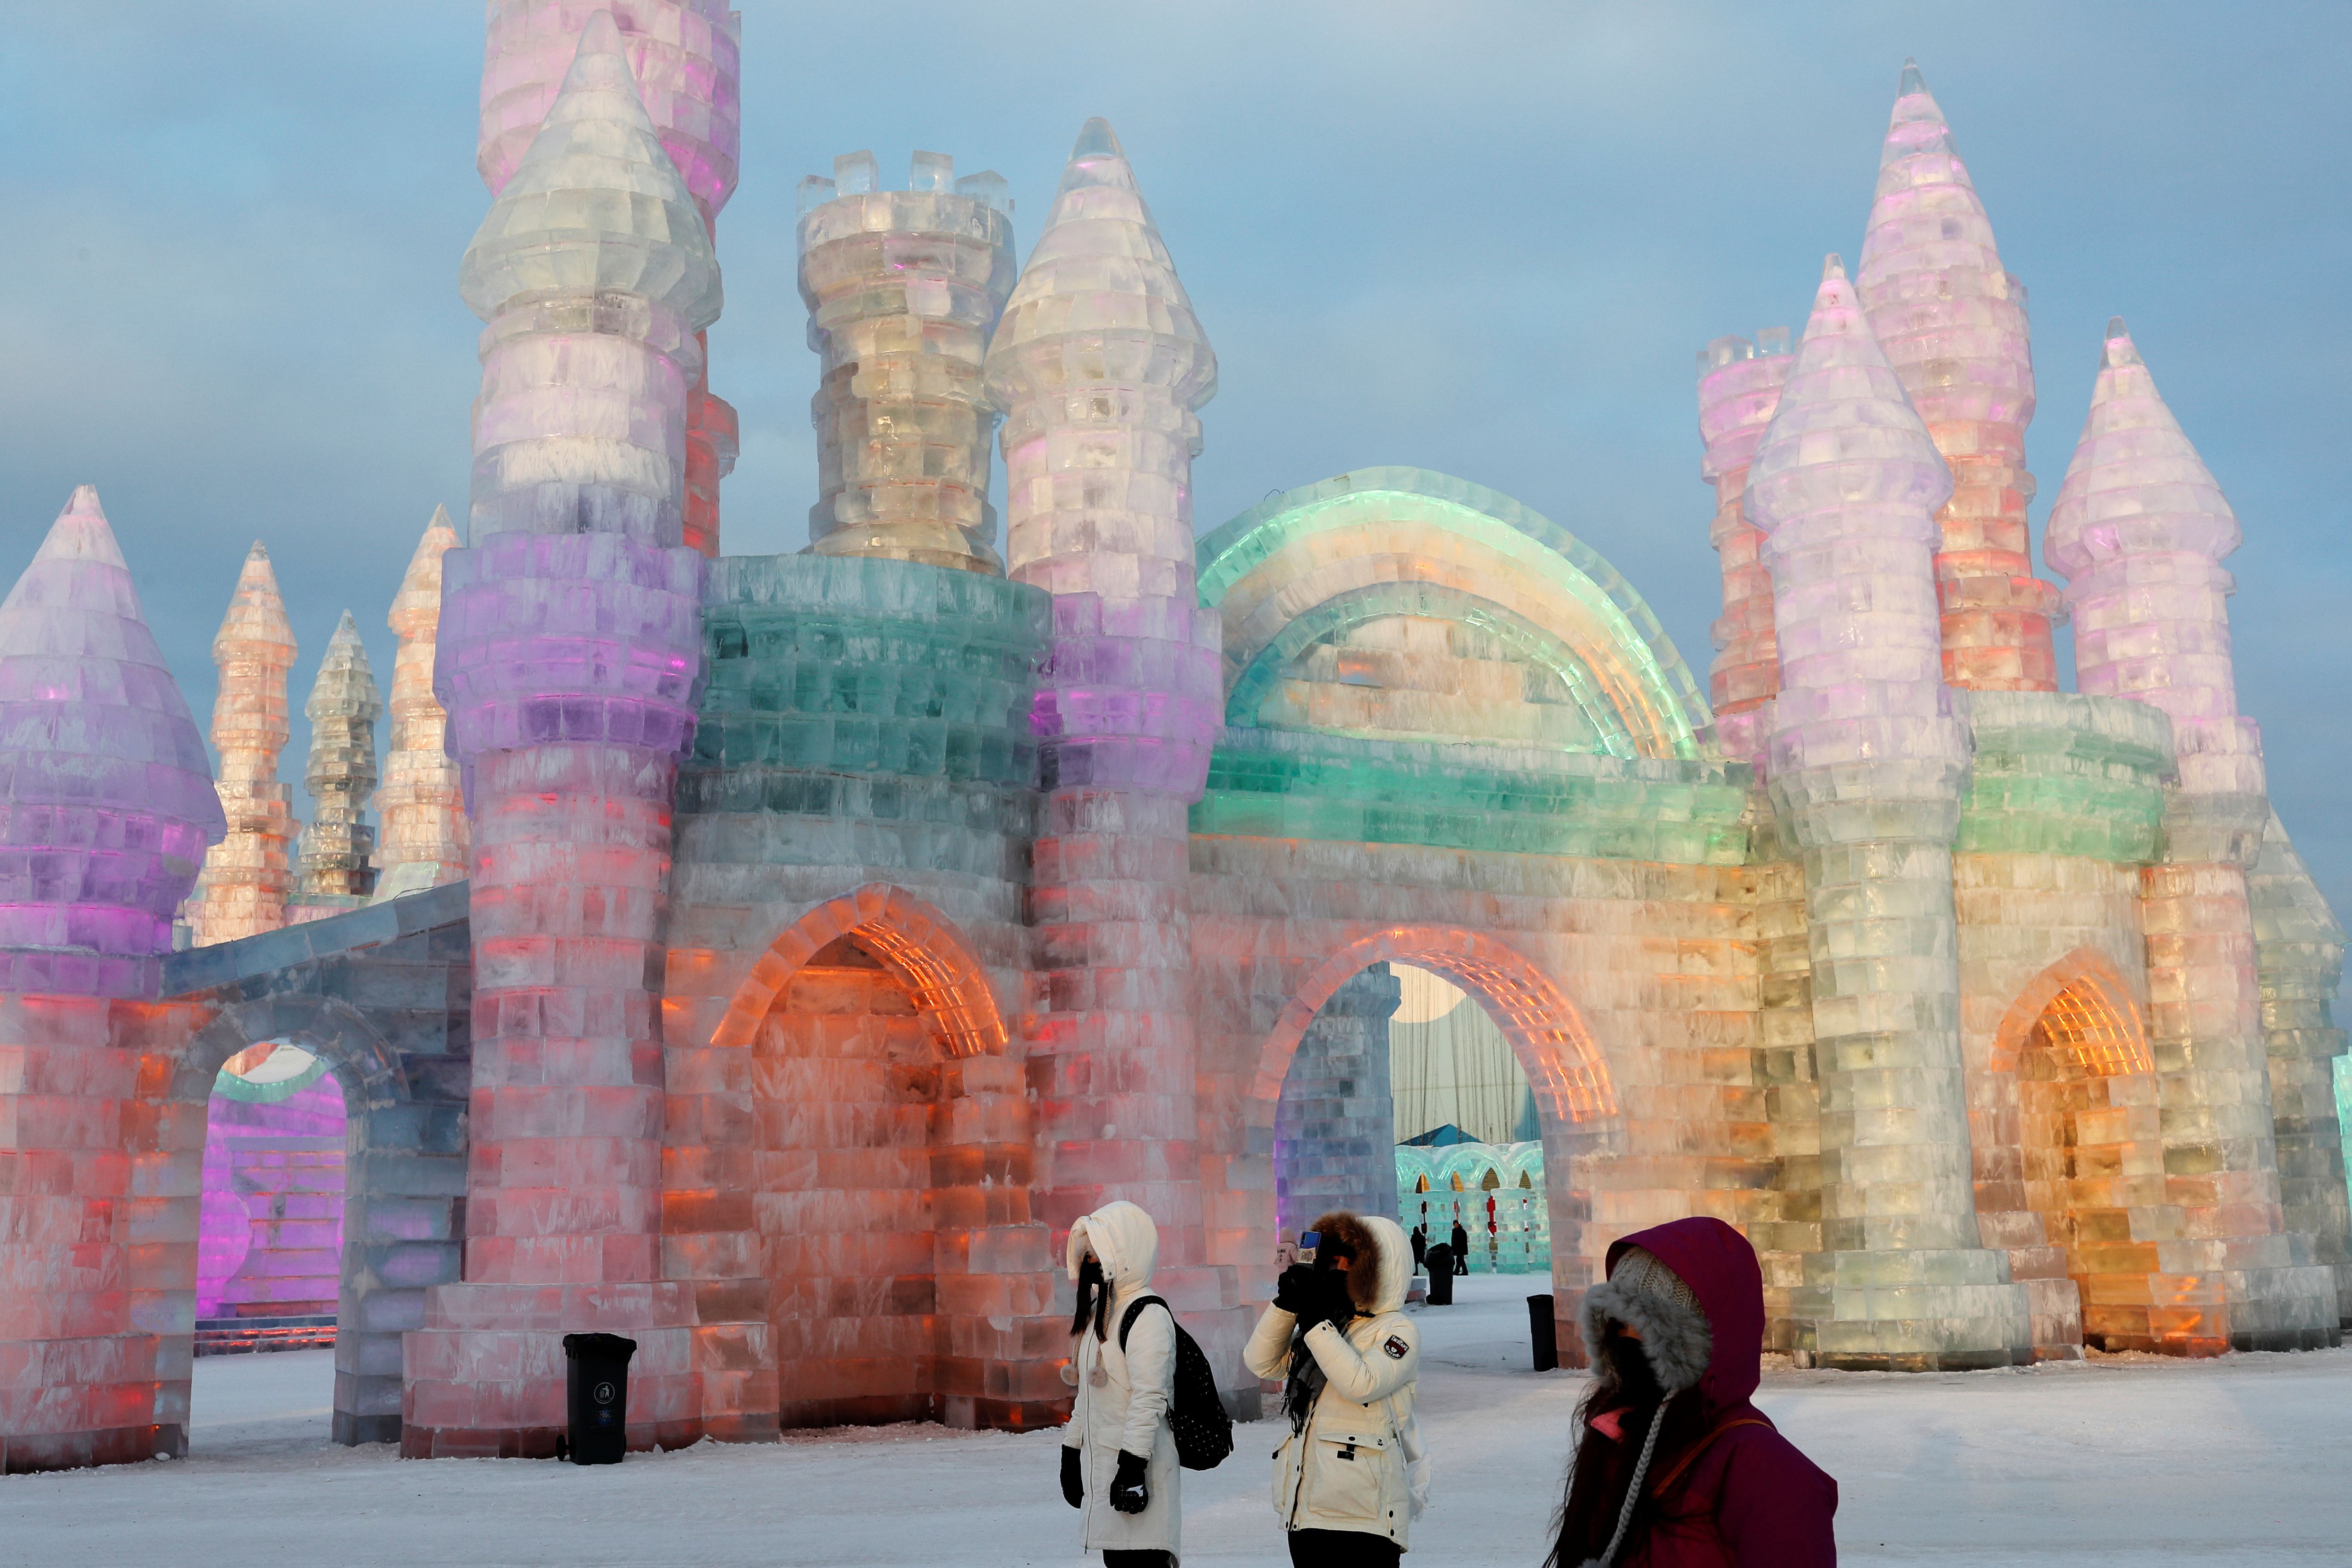 Visitors stand in front of ice sculptures illuminated by colored lights at annual ice festival, in the northern city of Harbin, Heilongjiang province, China January 4, 2019. REUTERS/Tyrone Siu - RC147AEFE4F0